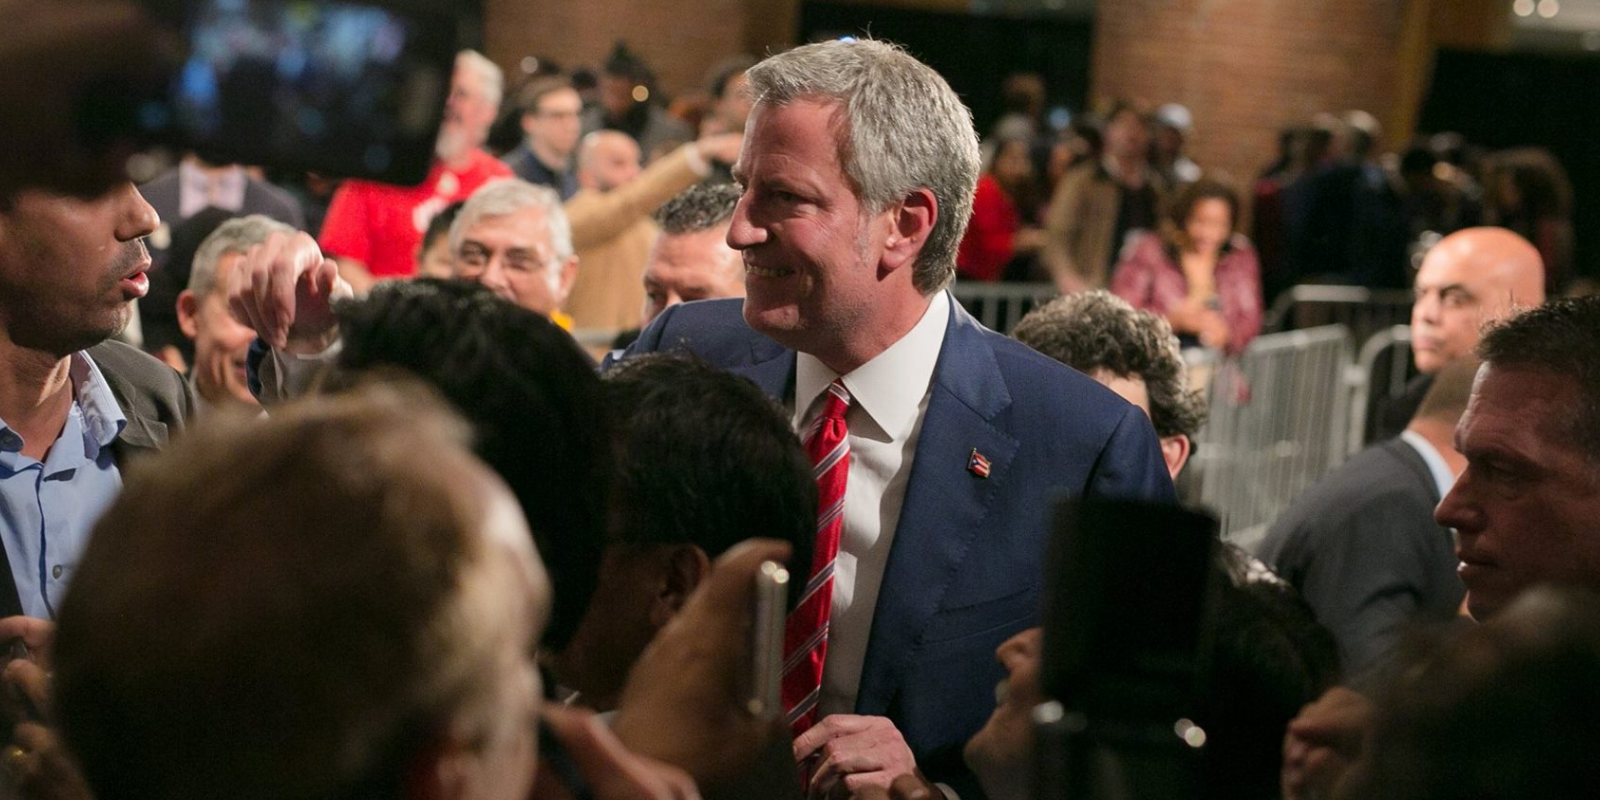 WATCH: De Blasio has no plan for opening NYC restaurants, passes the buck to Cuomo